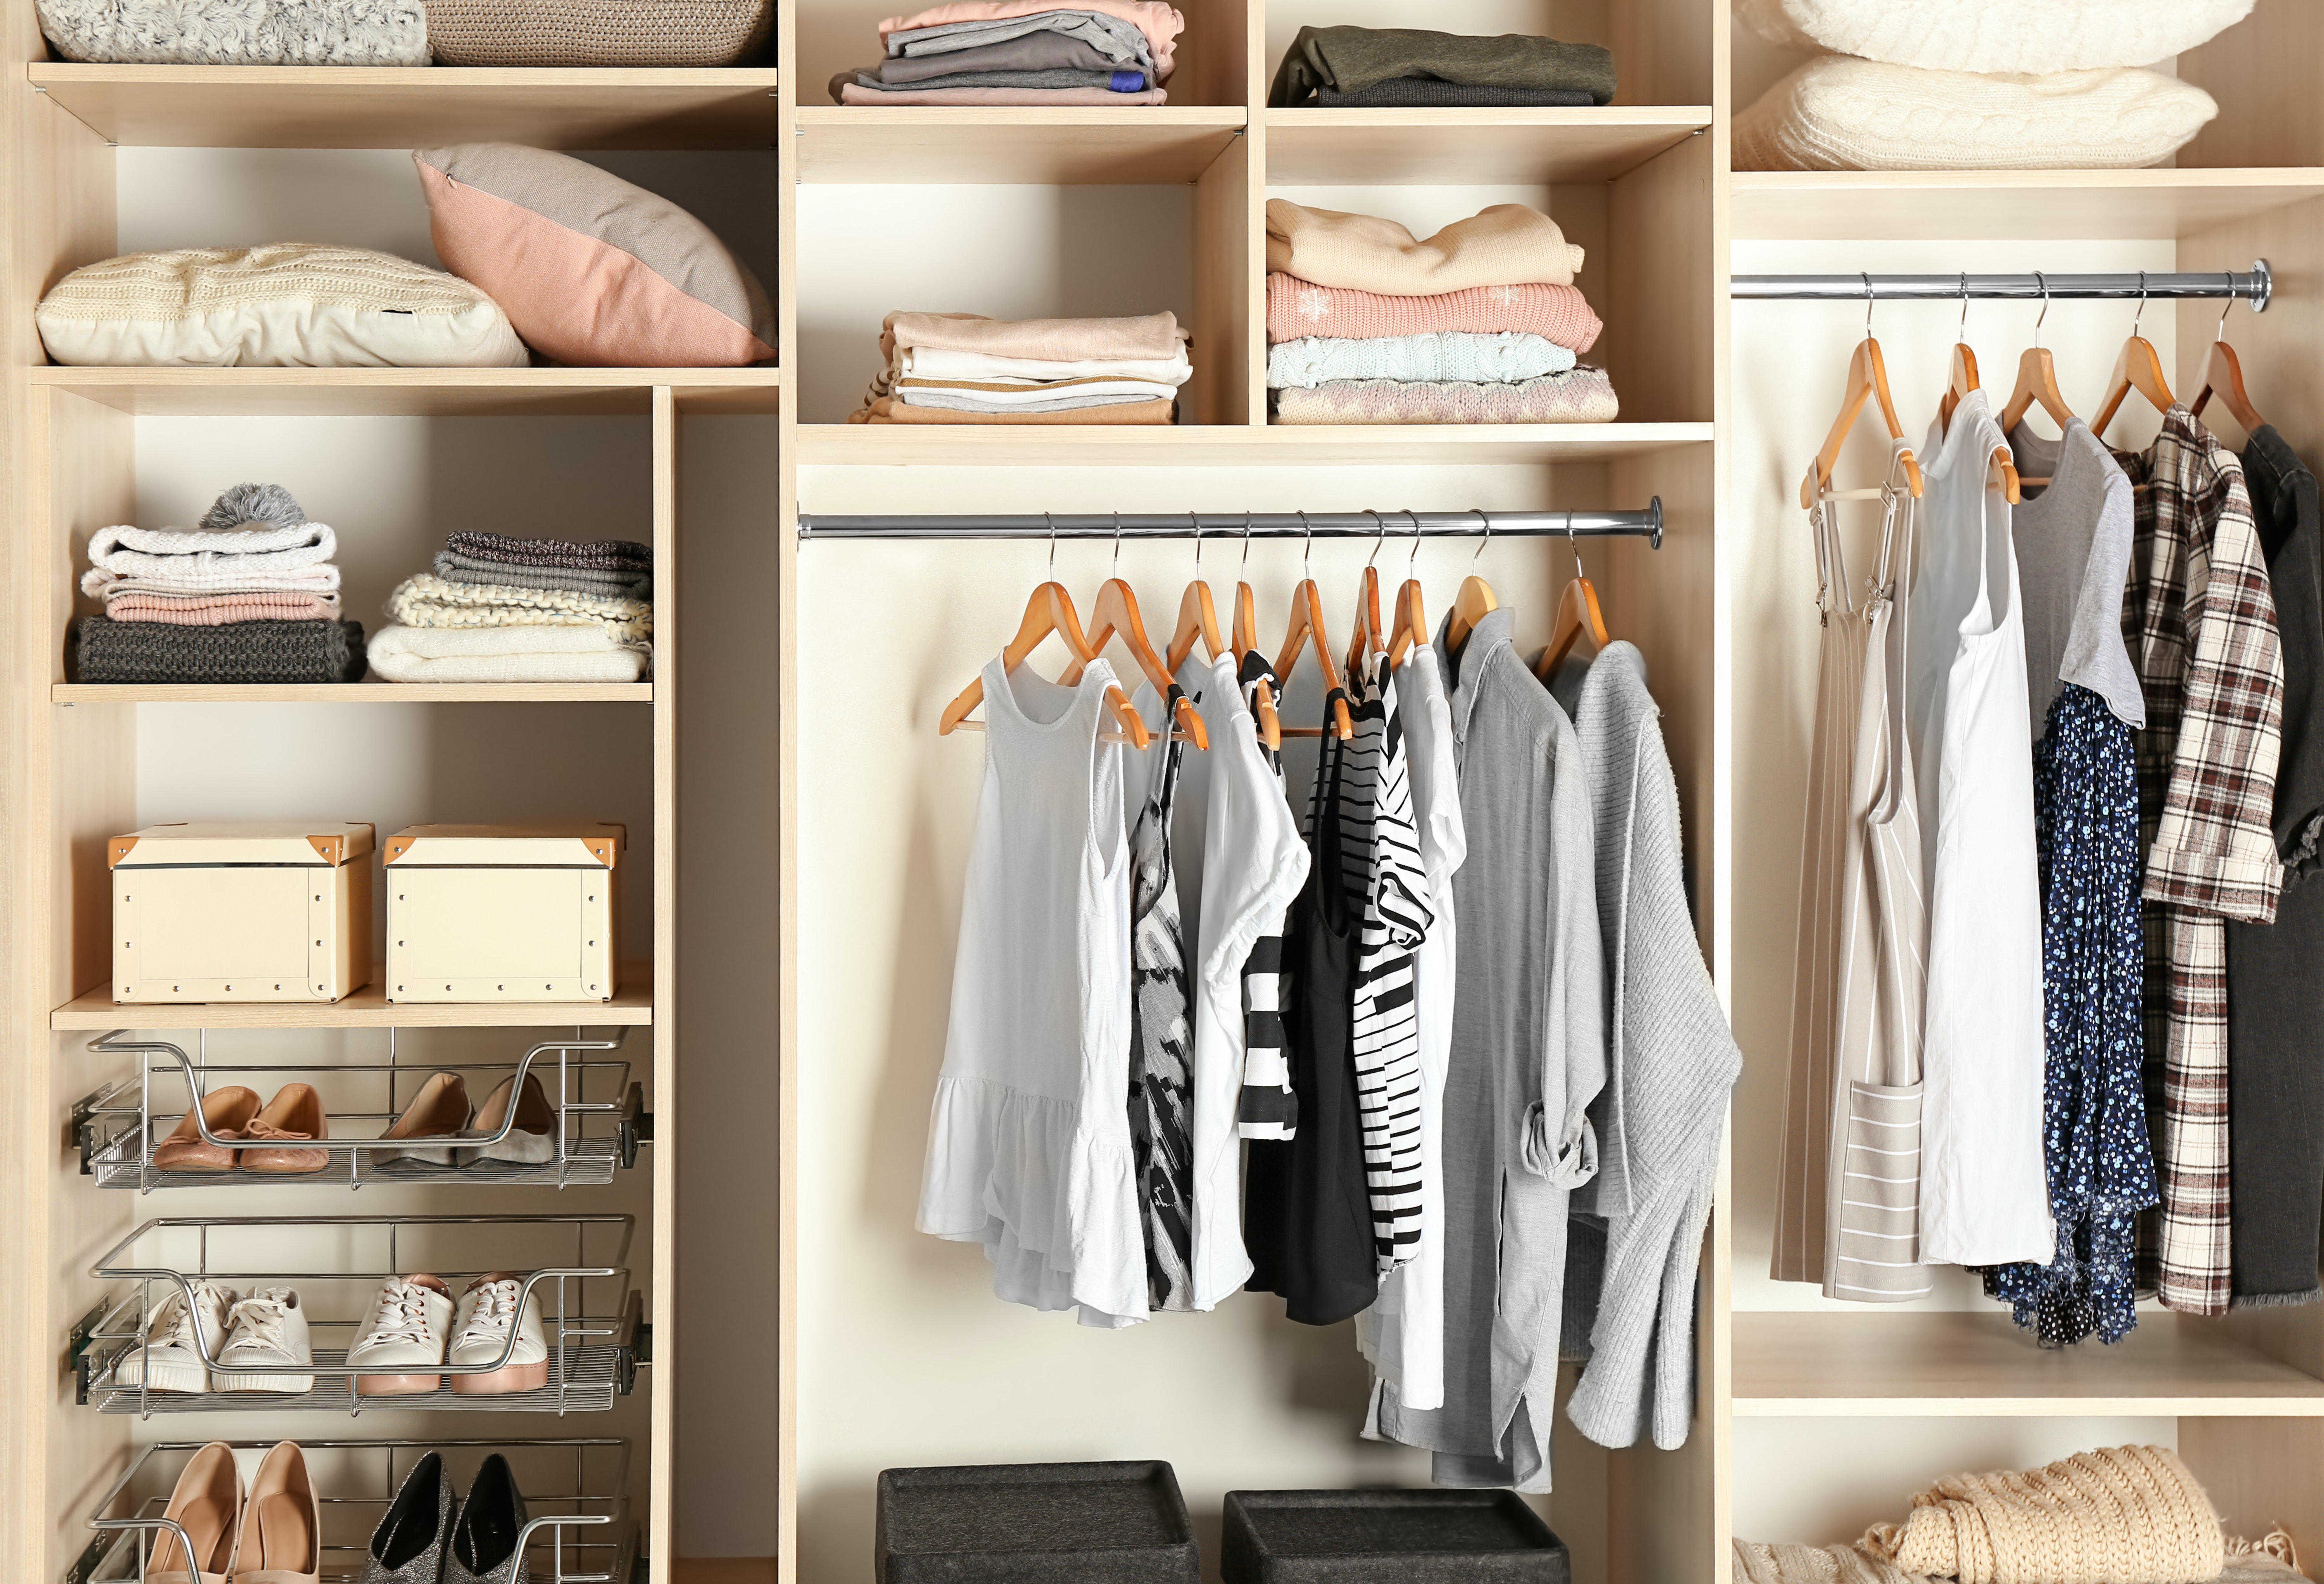 Wardrobe with clothes hanging in it